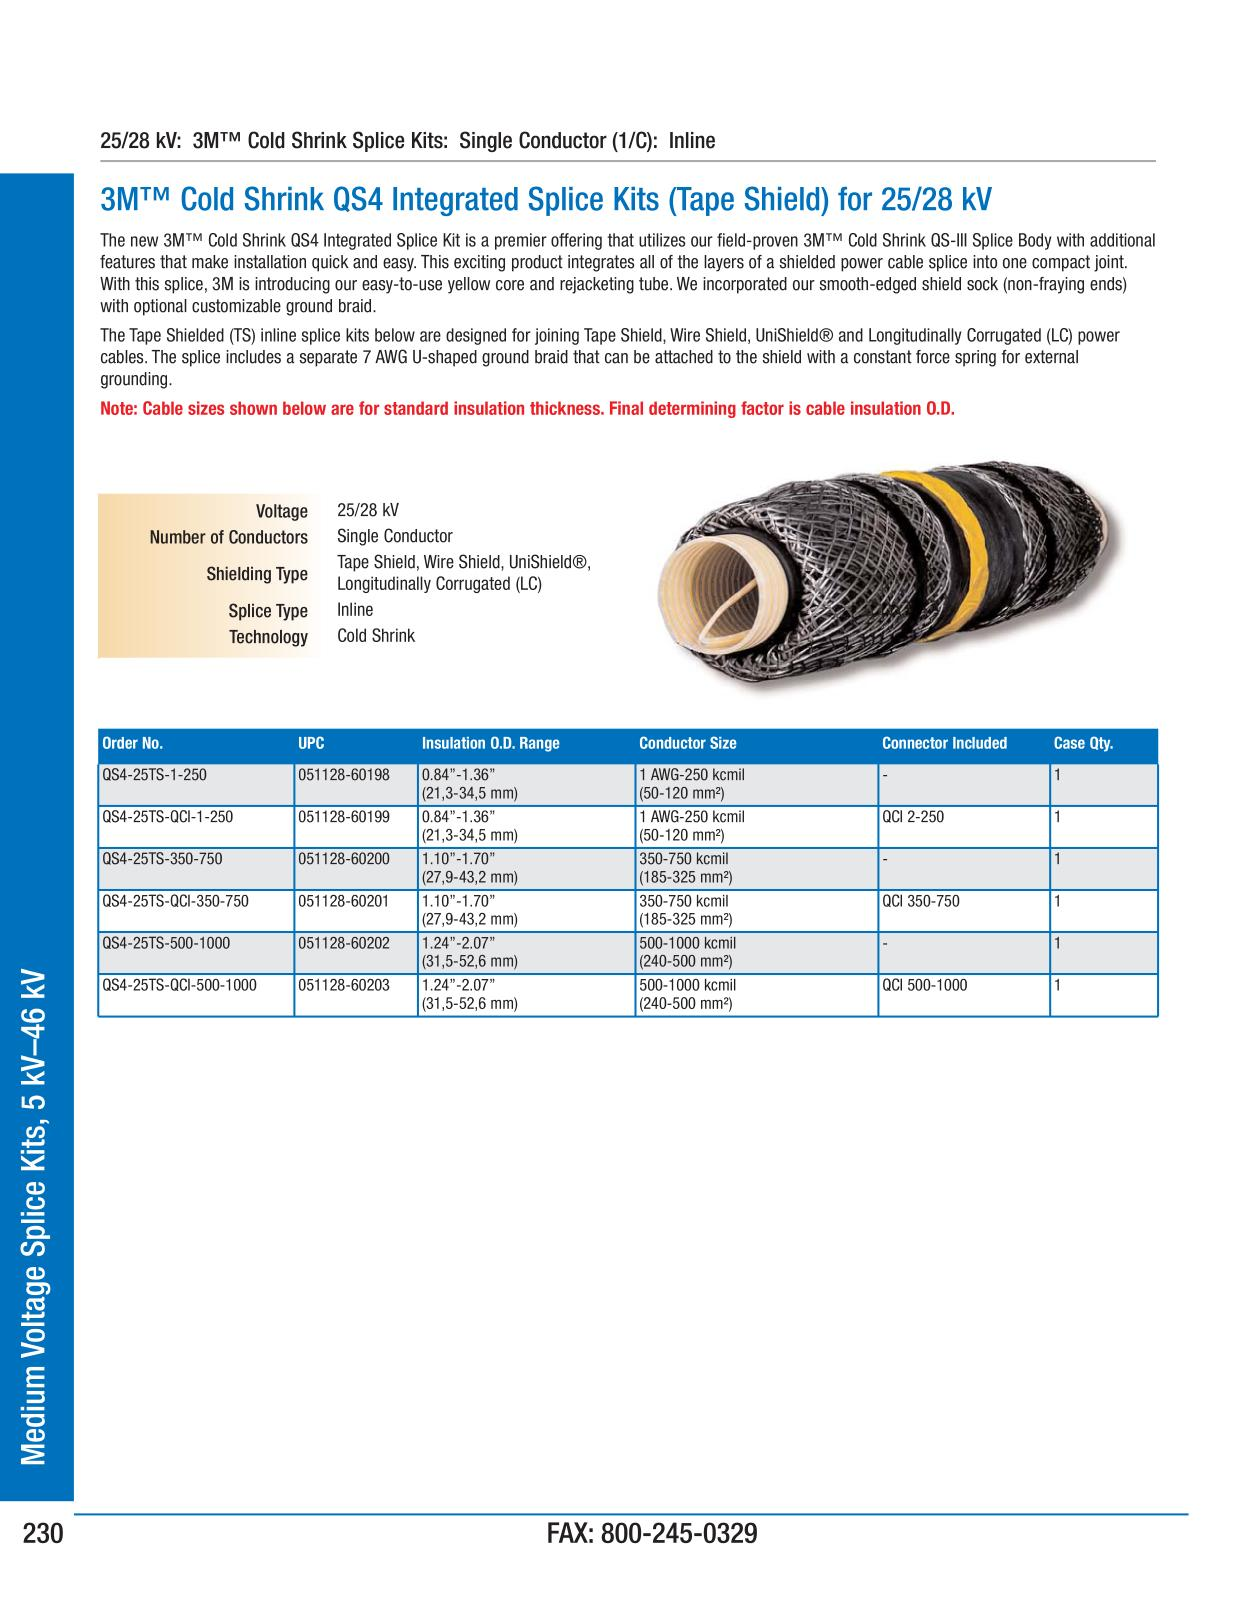 Medium voltage splice kits 5 kv 46 kv 3m electrical products medium voltage splice kits 5 kv 46 kv 3m electrical products page 231 greentooth Choice Image